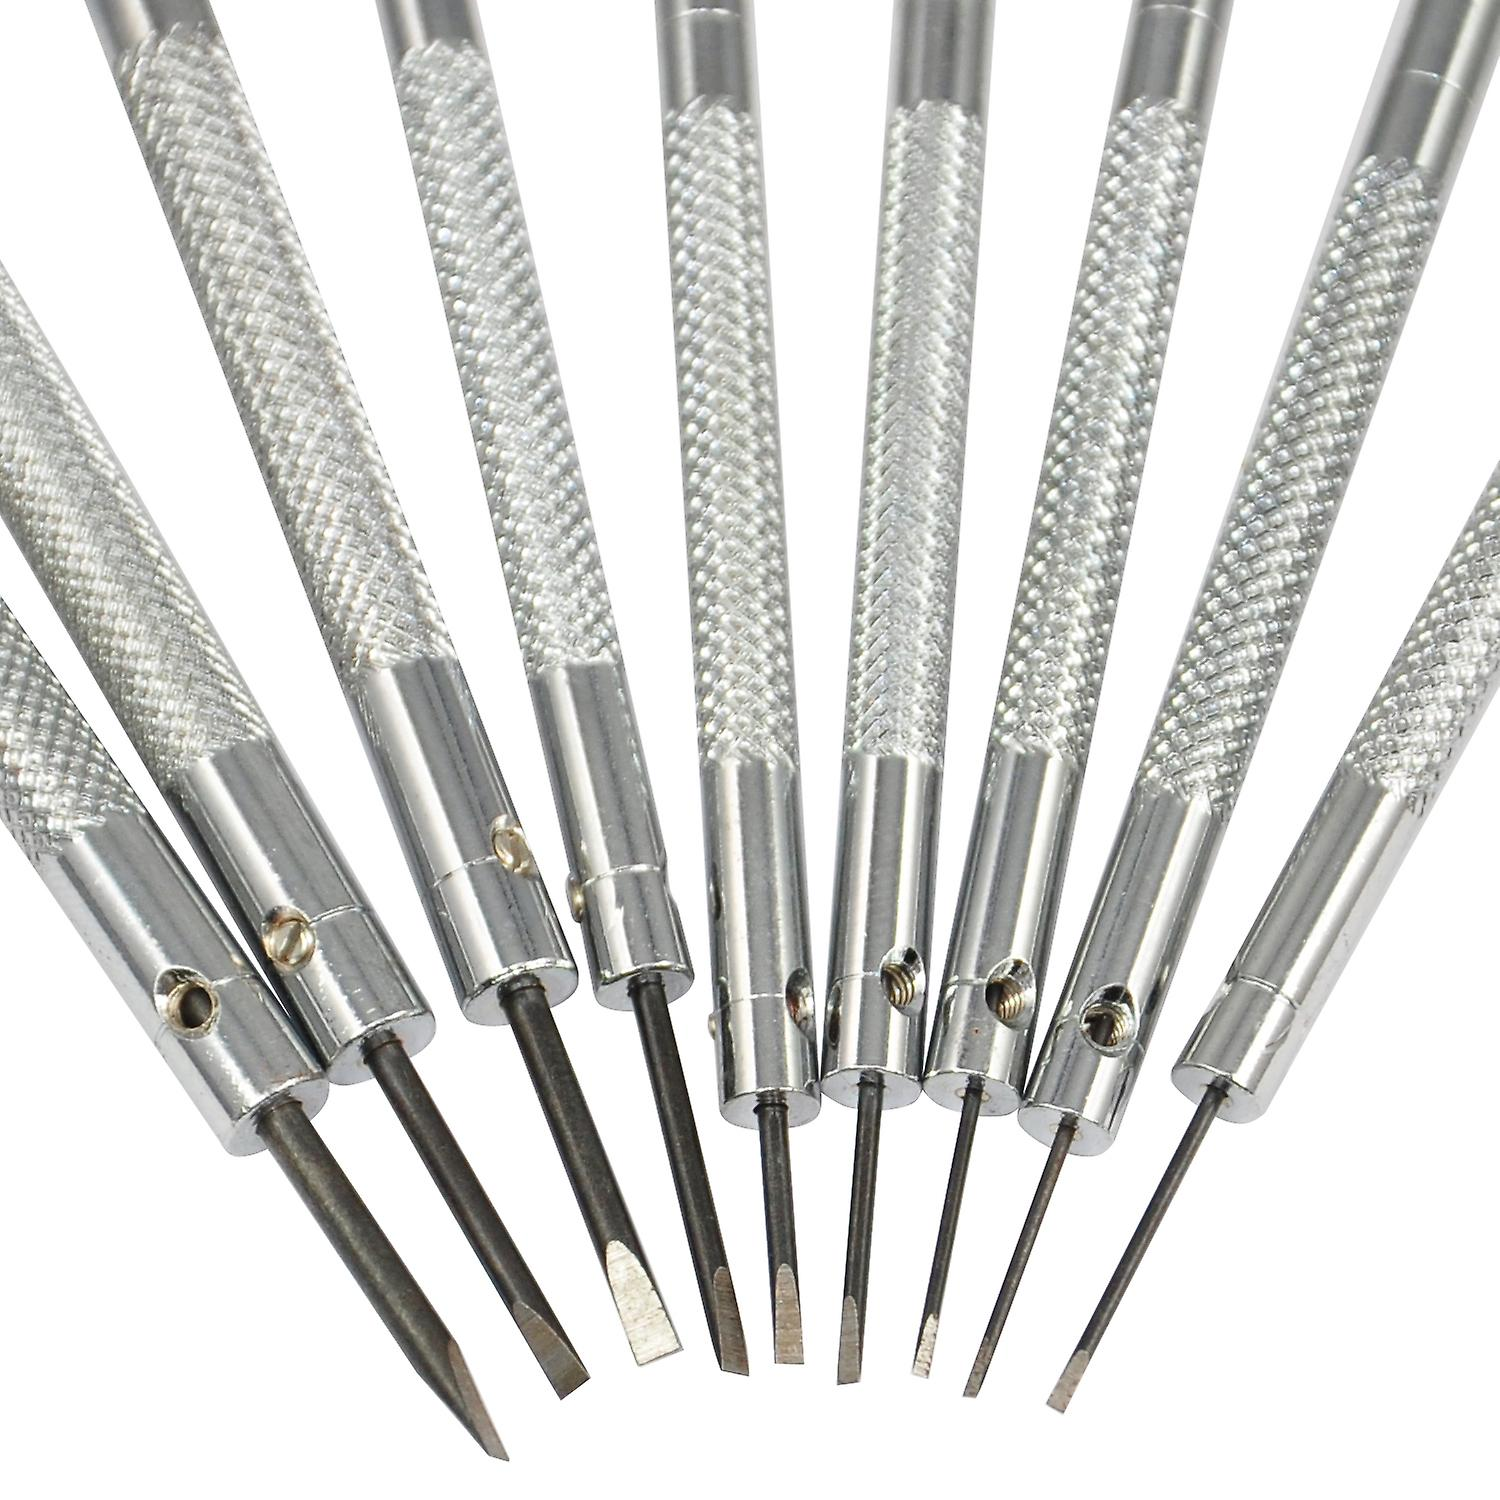 TRIXES Set Of 9 Professional Watch Screwdrivers on Stand